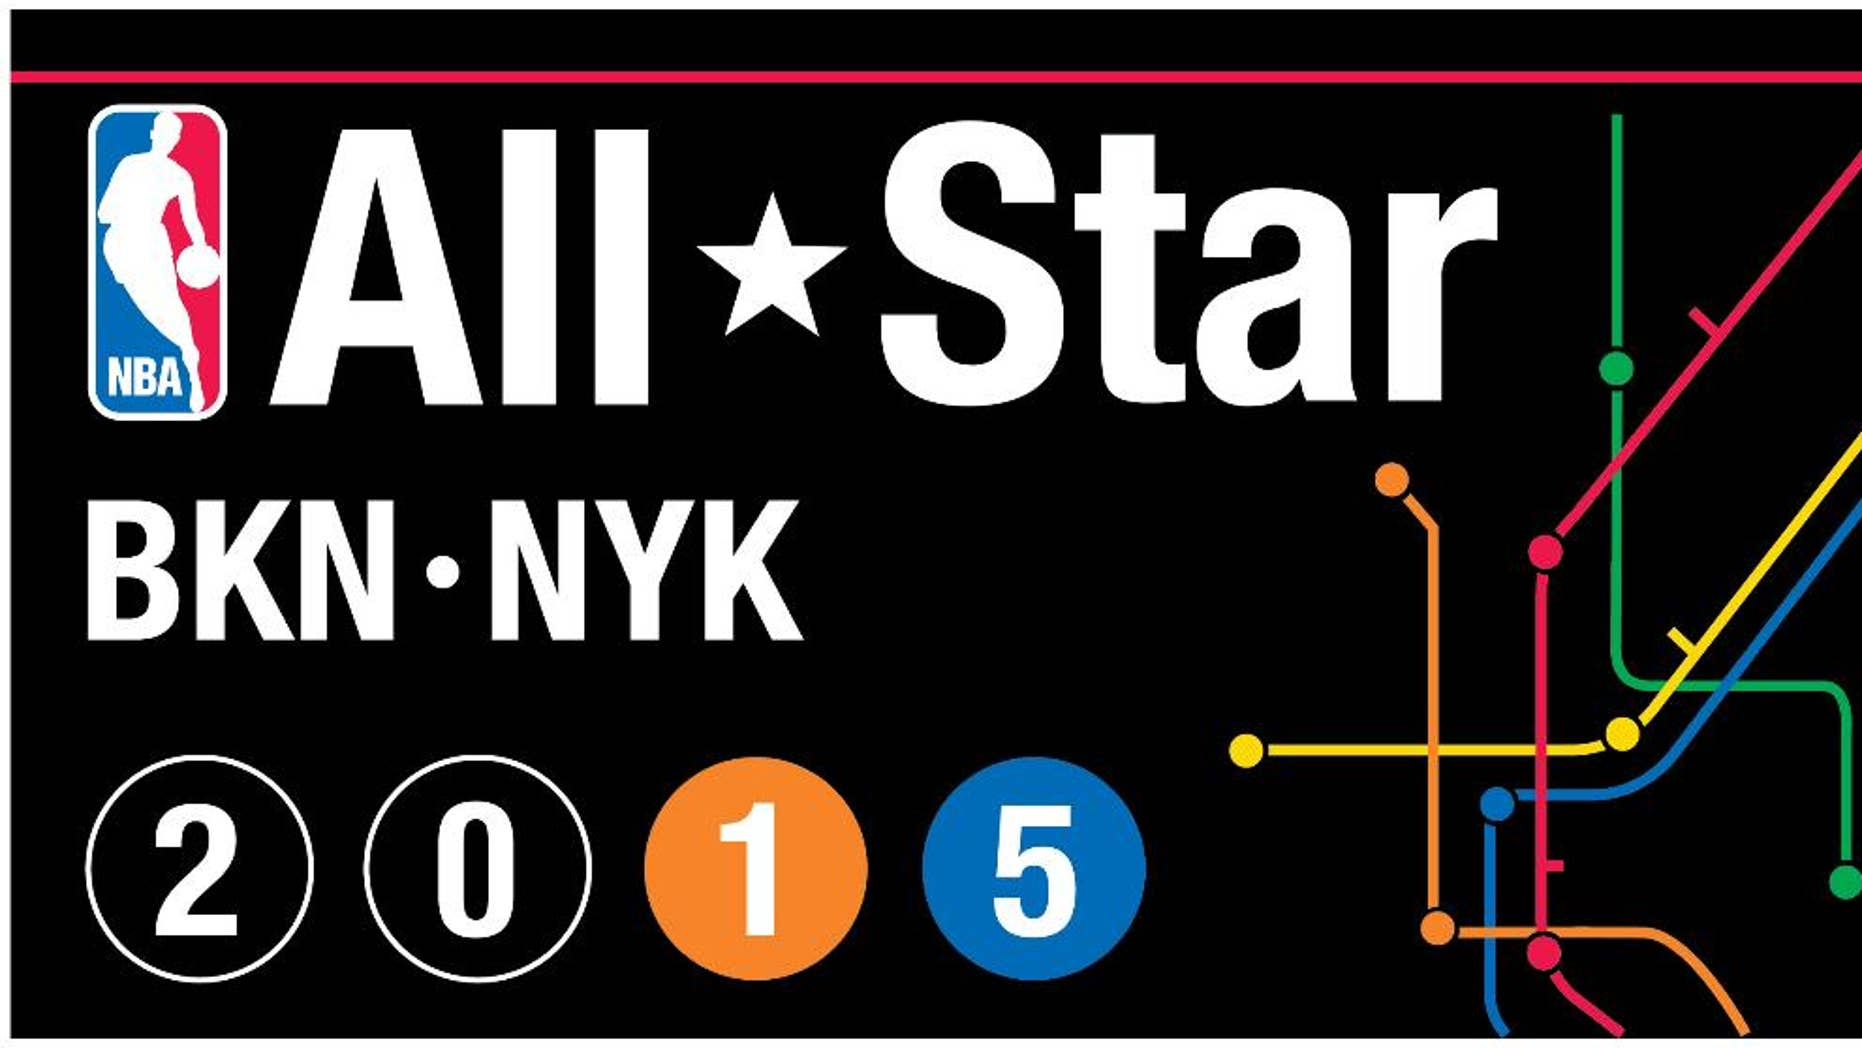 This graphic released by the NBA on Thursday, July 10, 2015, shows the logo for the 2015 NBA All Star basketball game in New York. (AP Photo/NBA)